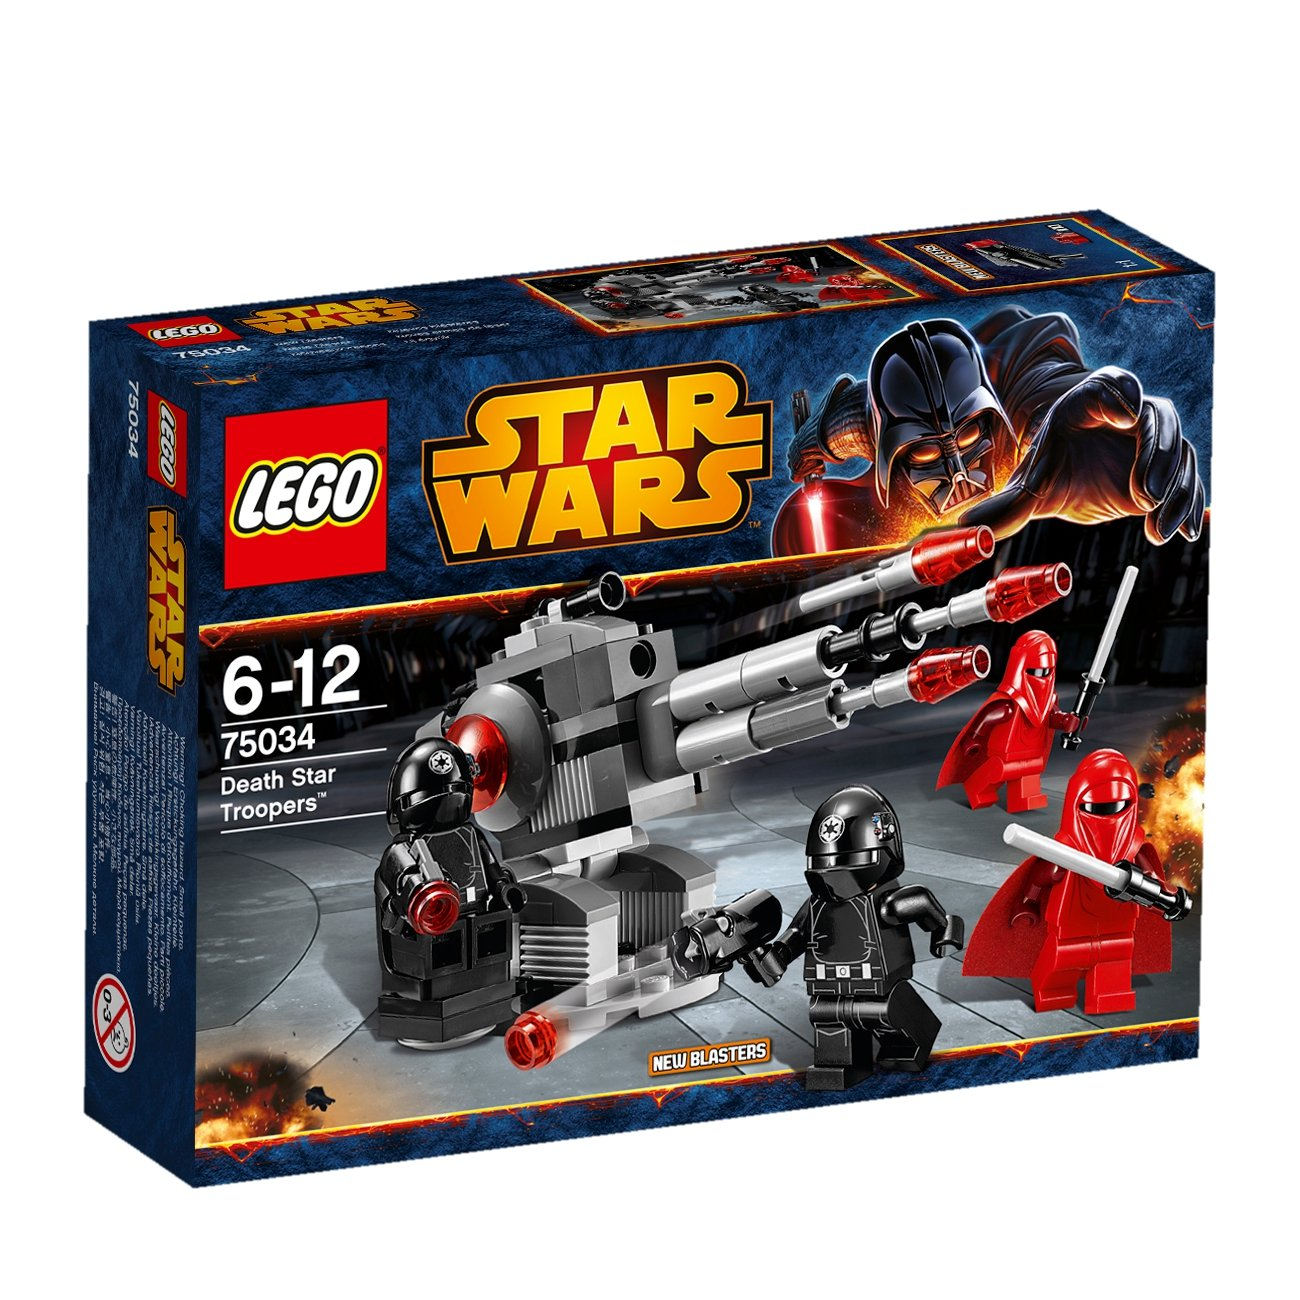 Top 5 Best LEGO Death Star Sets Reviews in 2019 5